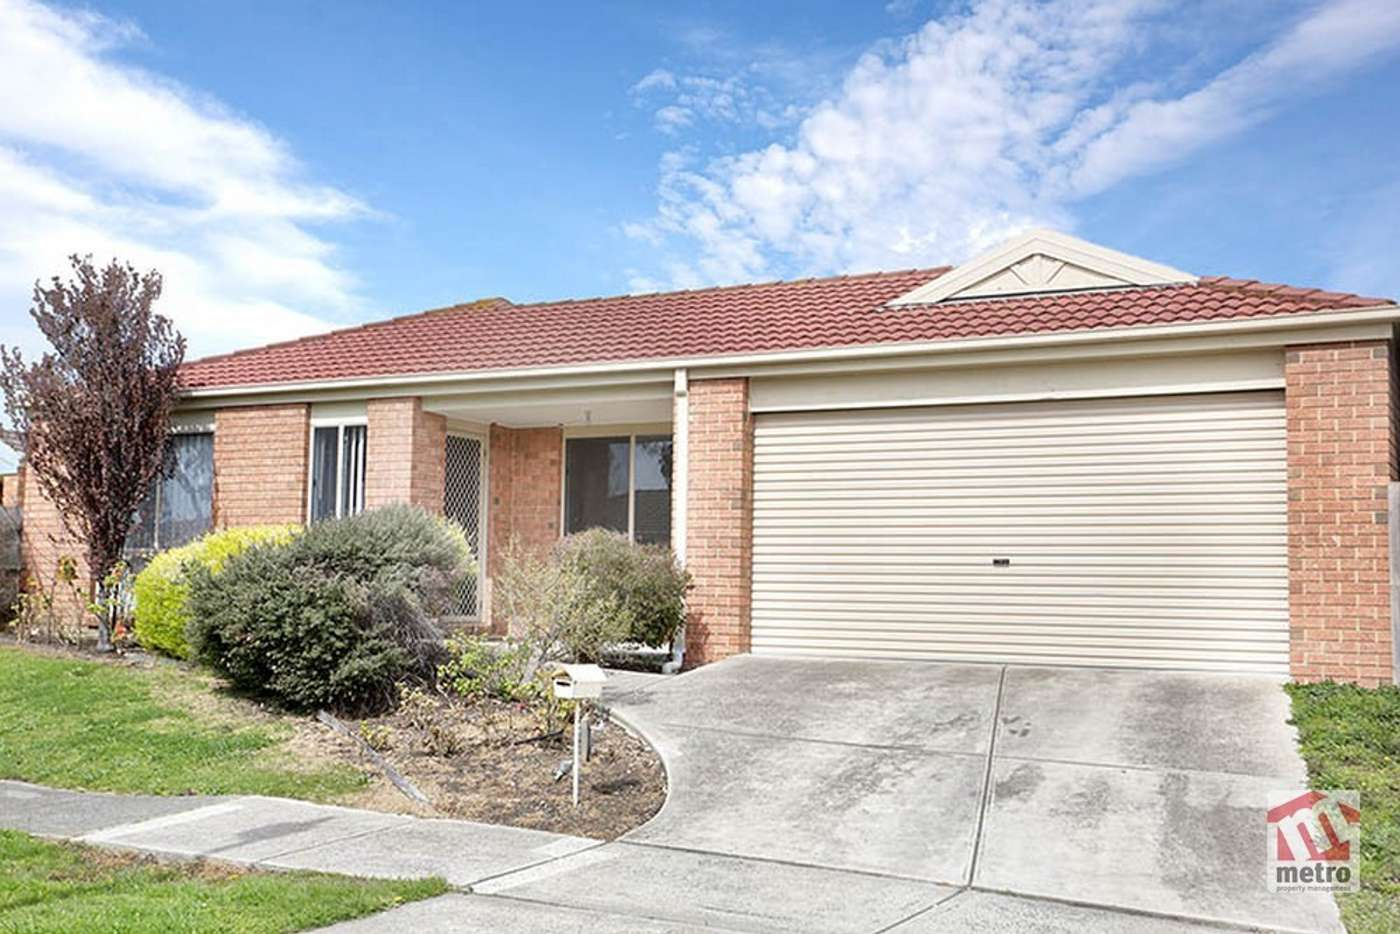 Main view of Homely house listing, 5 Breamlea Way, Cranbourne West VIC 3977